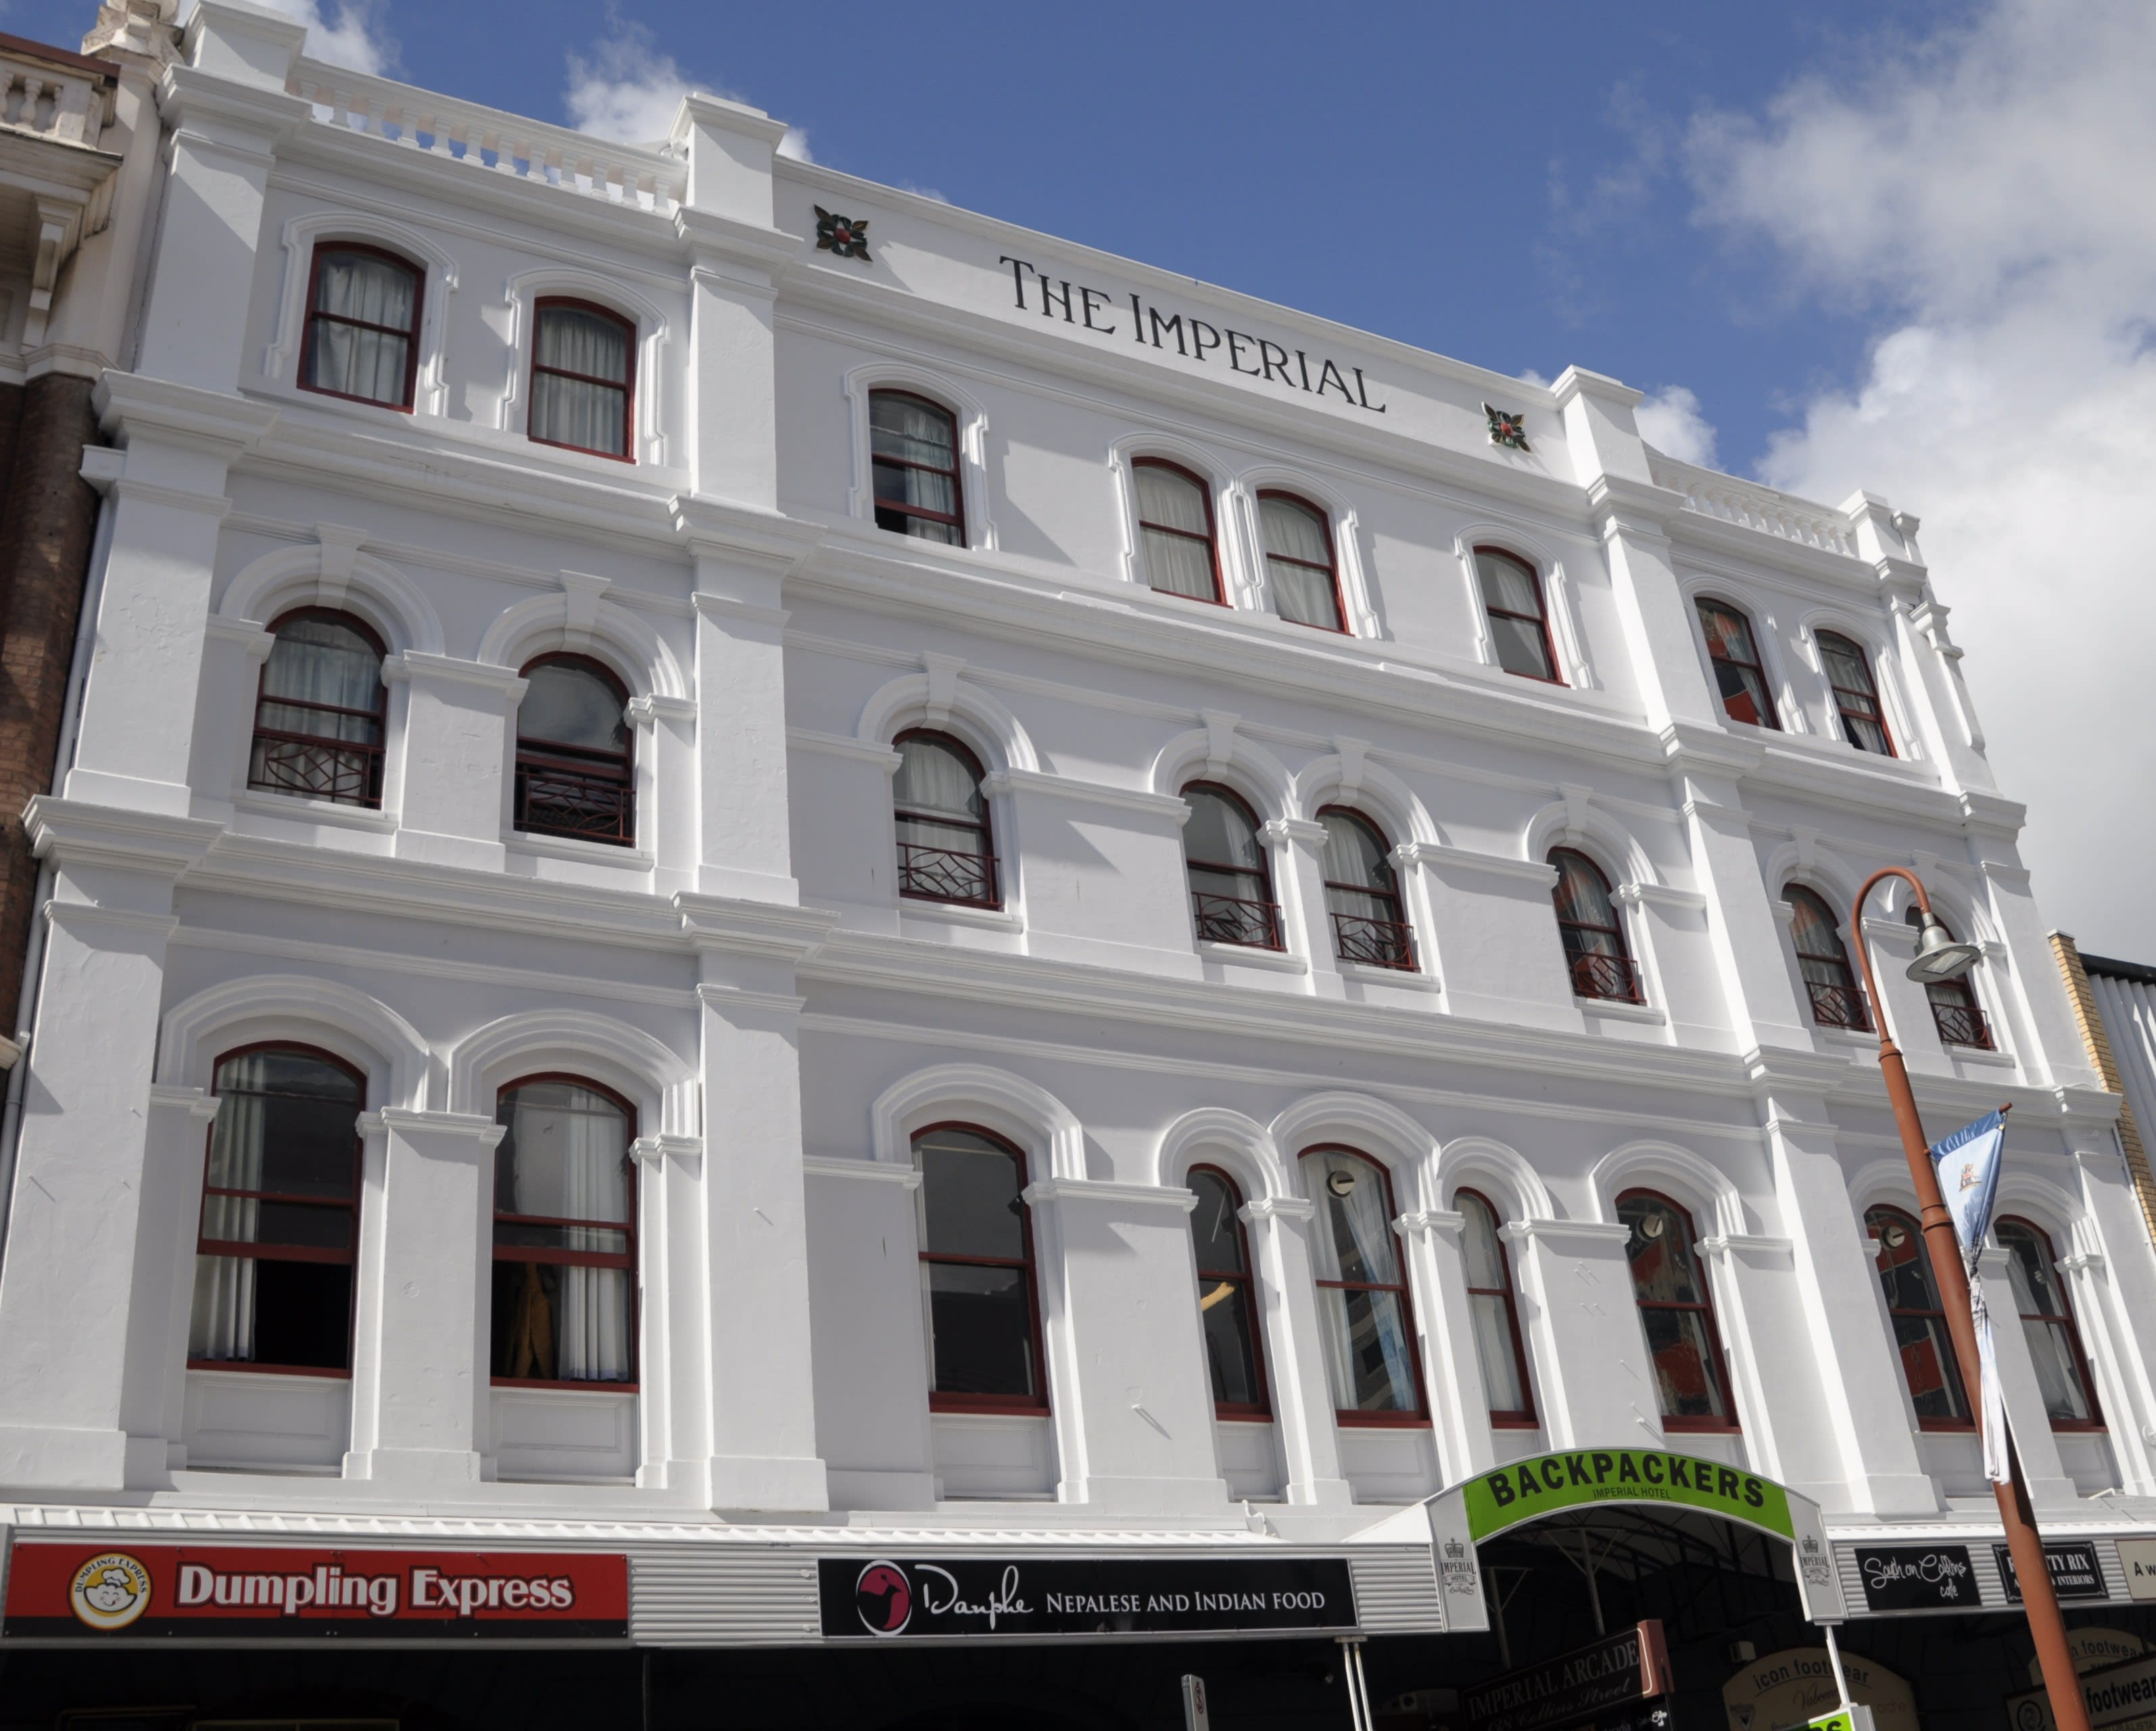 Imperial Hotel Backpackers